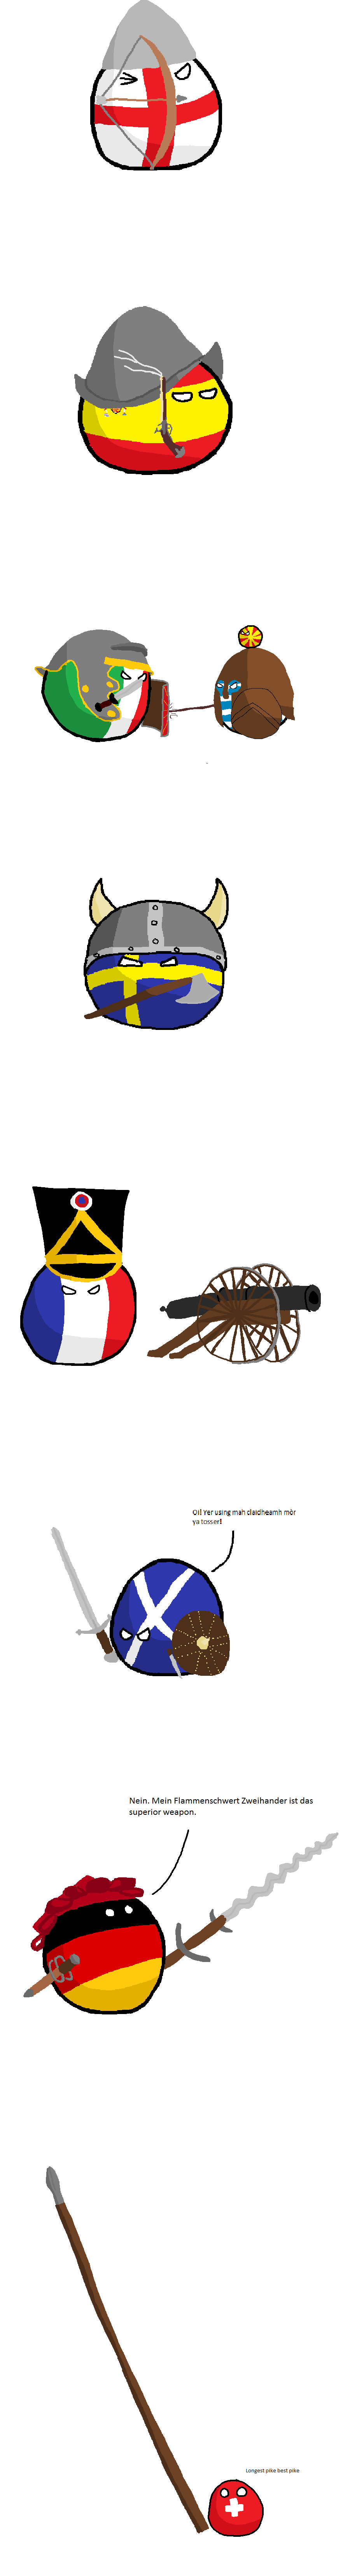 Trademark European Weaponry England Spain Italy Greece Macedonia Sweden France Scotland Germany Switzerland Country Jokes Funny Flags Country Humor